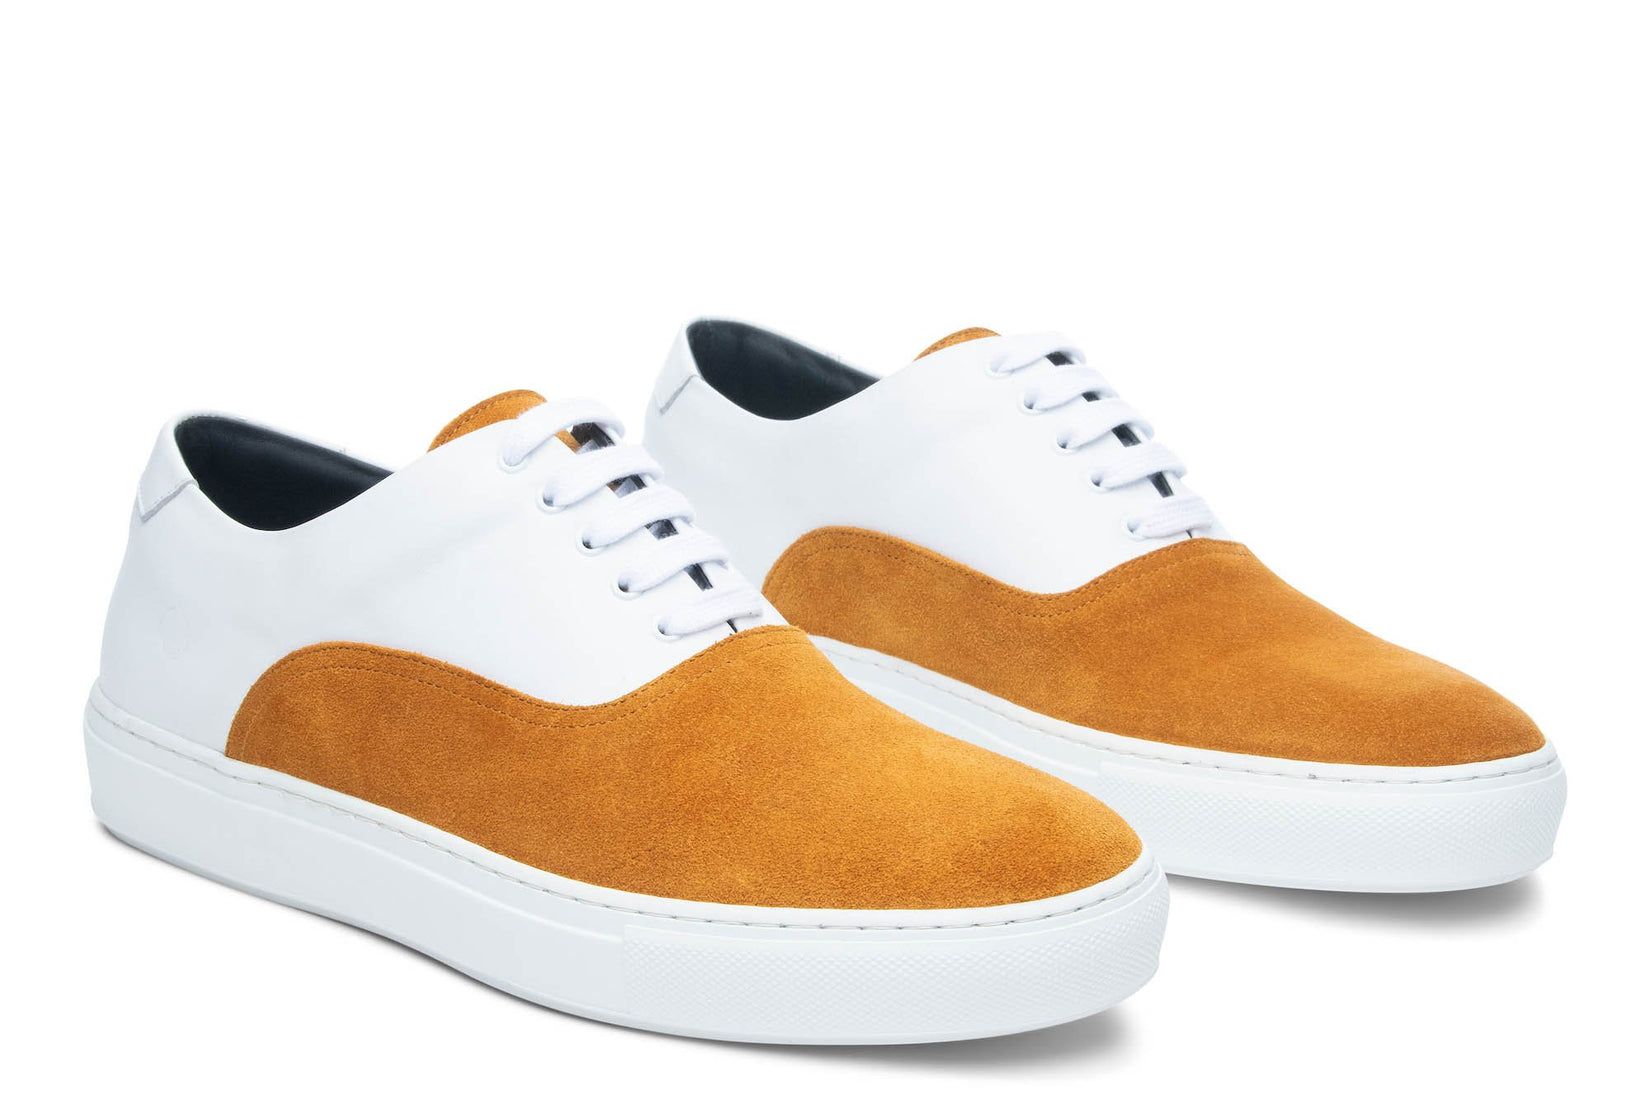 Sunday Two-Tone Skater Sneaker in White/Marigold